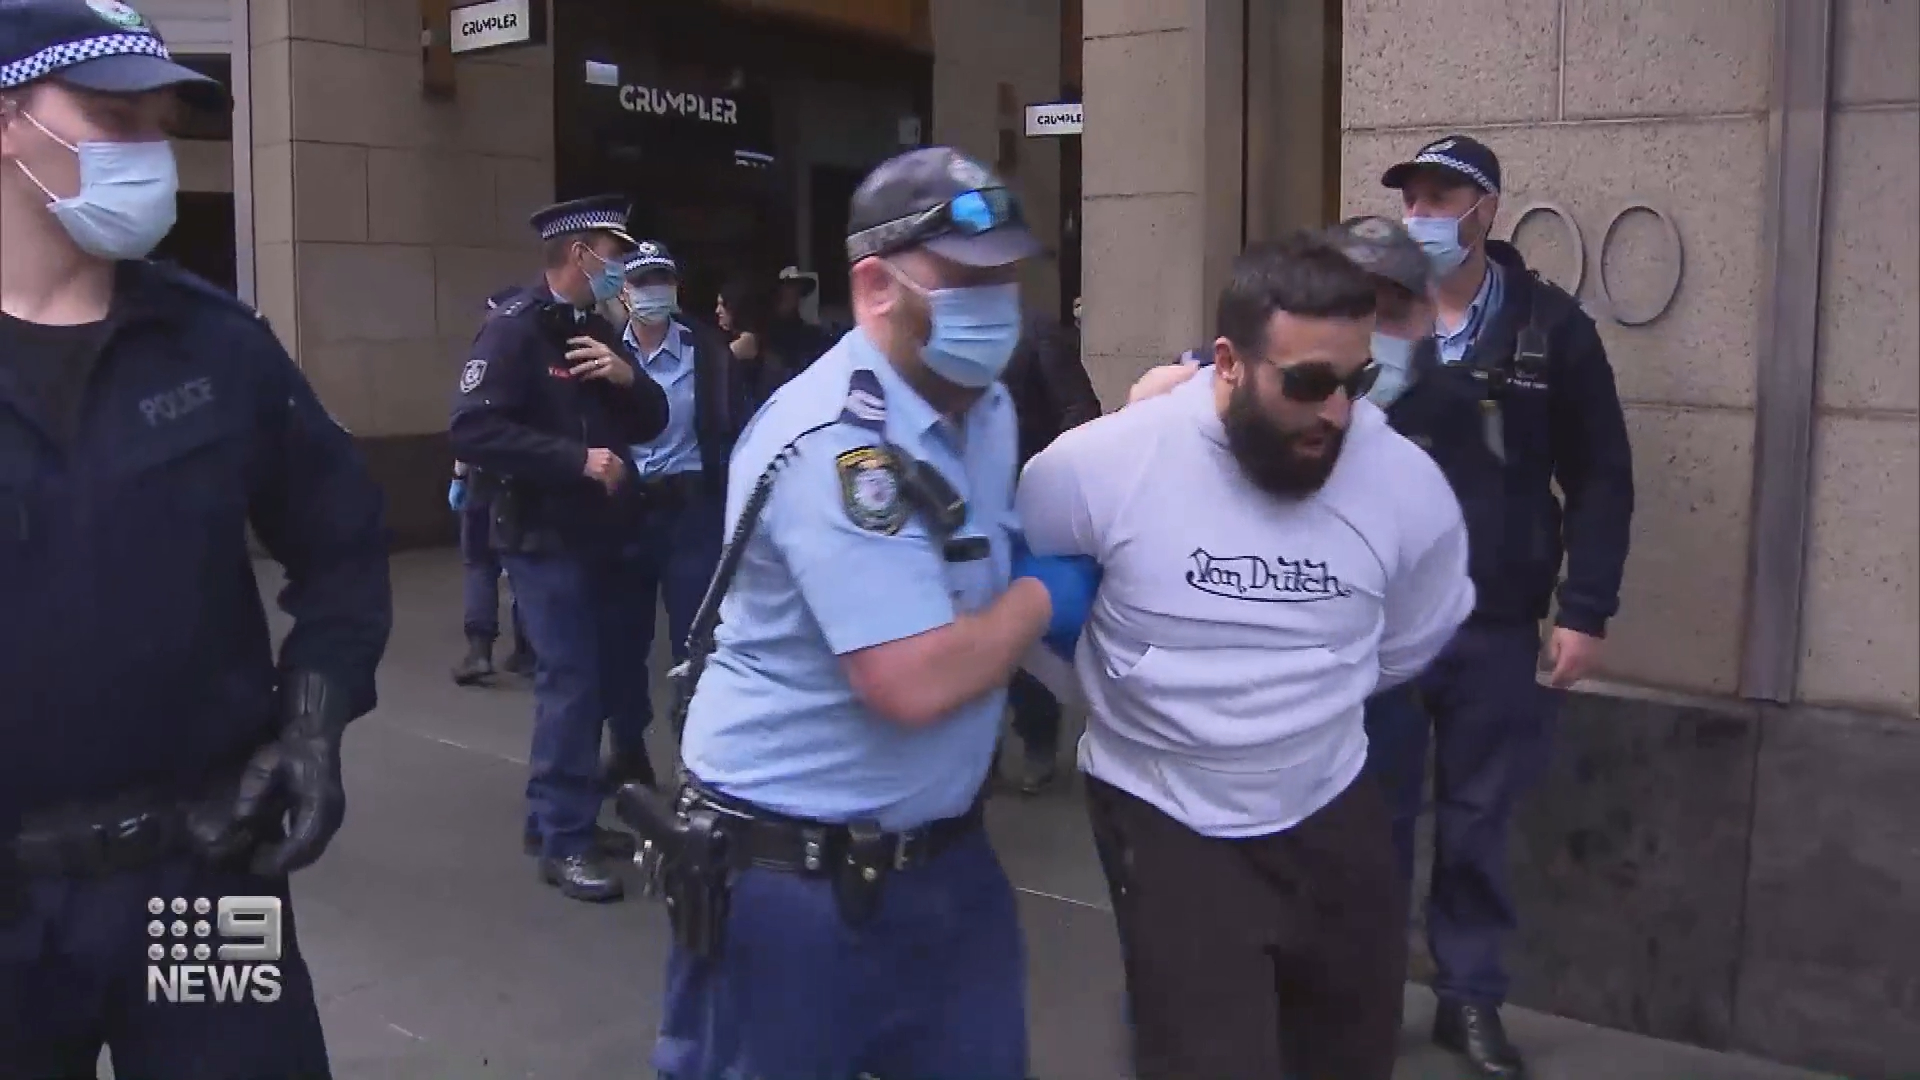 Anti-lockdown protesters charged